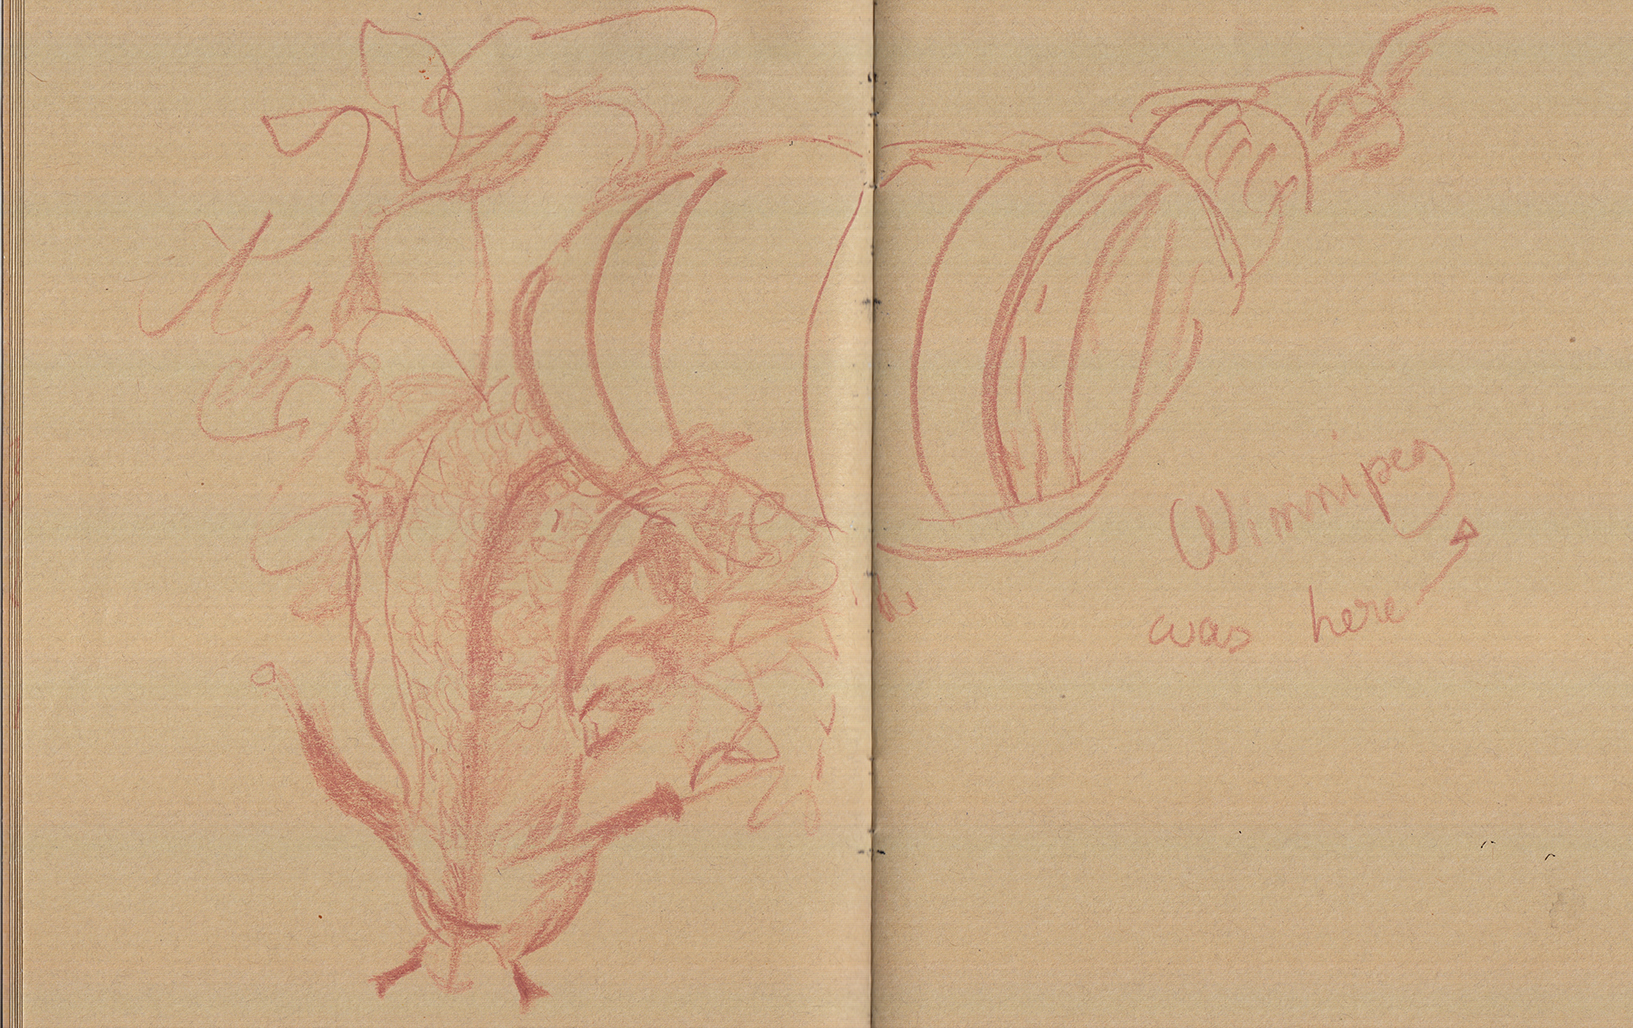 Antonija Livingstone's pet snail Winnipeg climbing up my notebook, Festival Extension Sauvage, June 2017, Château de la Ballue, live-sketching by Araso